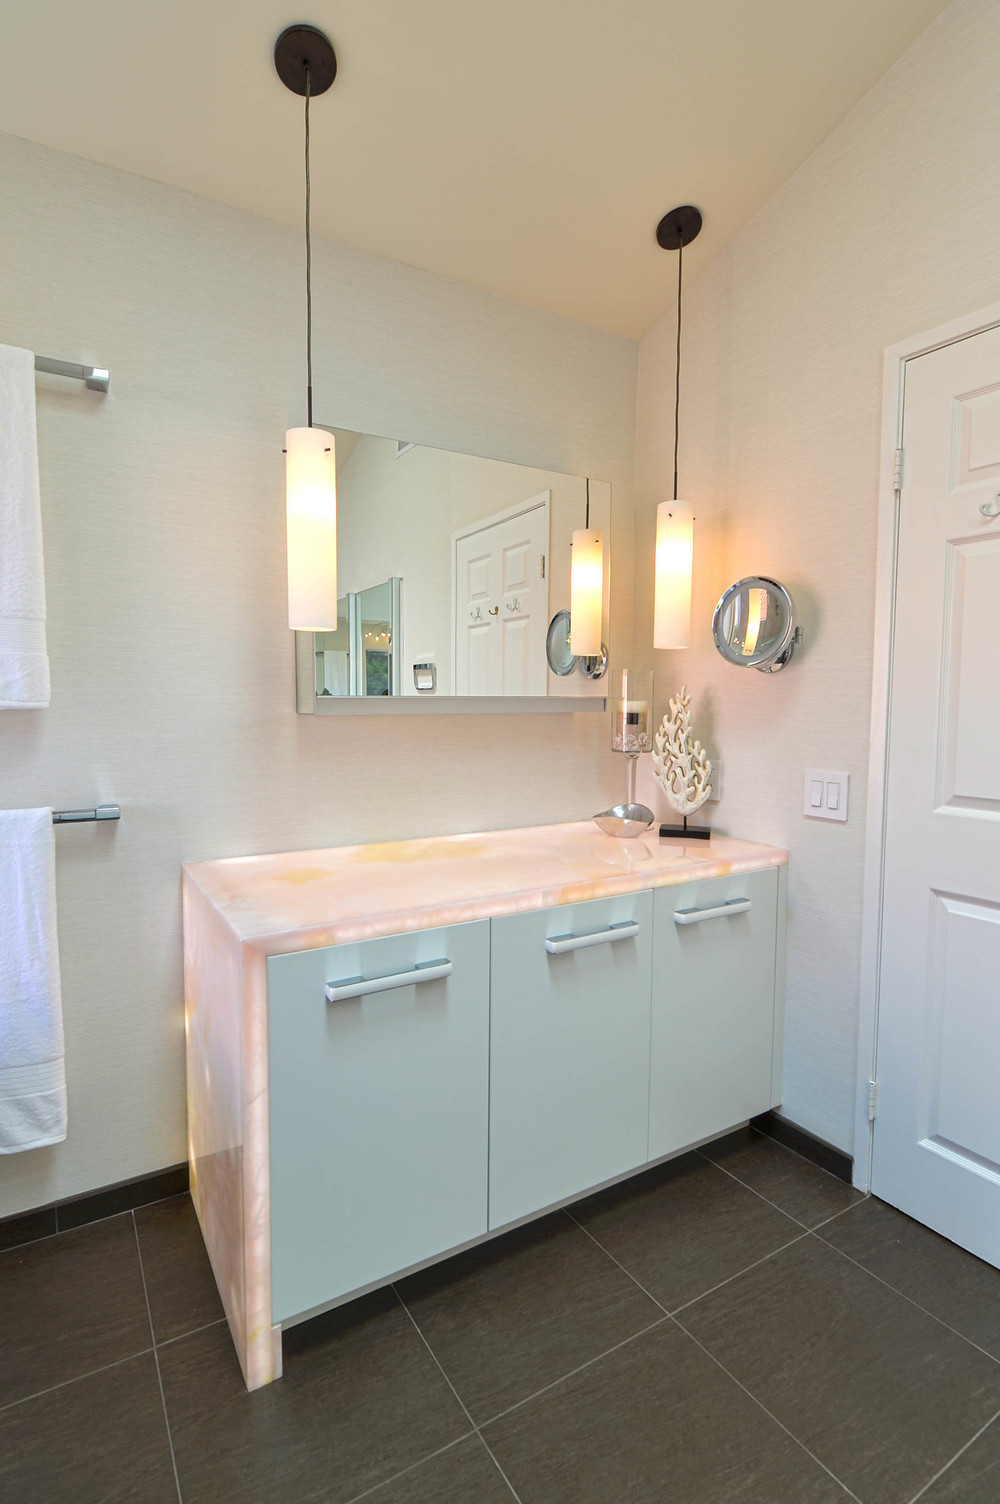 Bathroom Remodel San Diego san diego kitchen design build remodel - bathroom designer